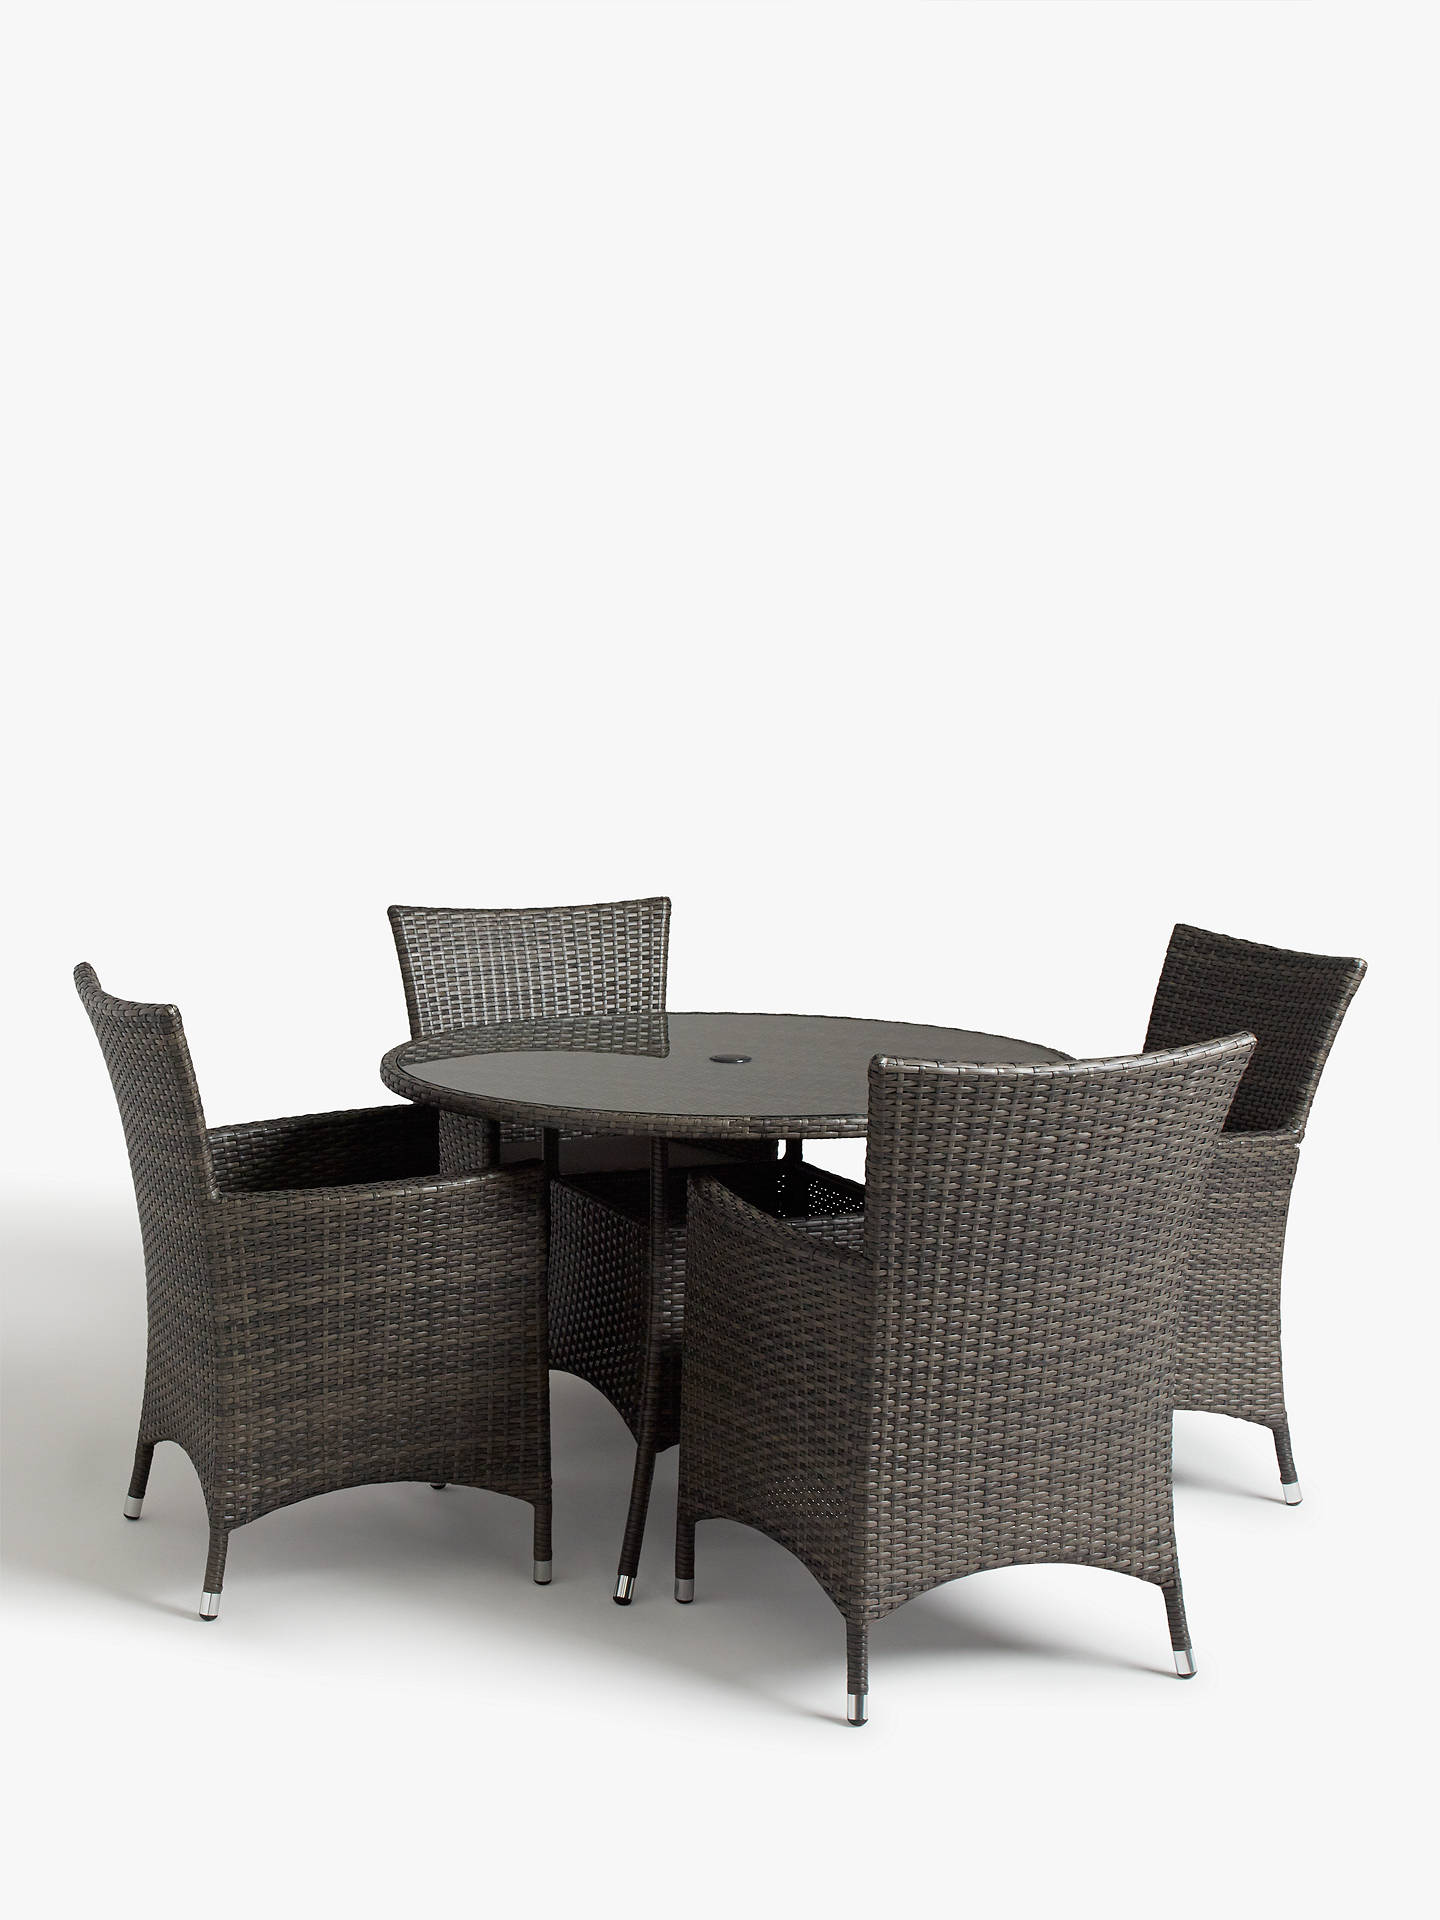 bb2c25c45f Buy John Lewis & Partners Alora 4-Seater Garden Dining Table & Chairs Set,